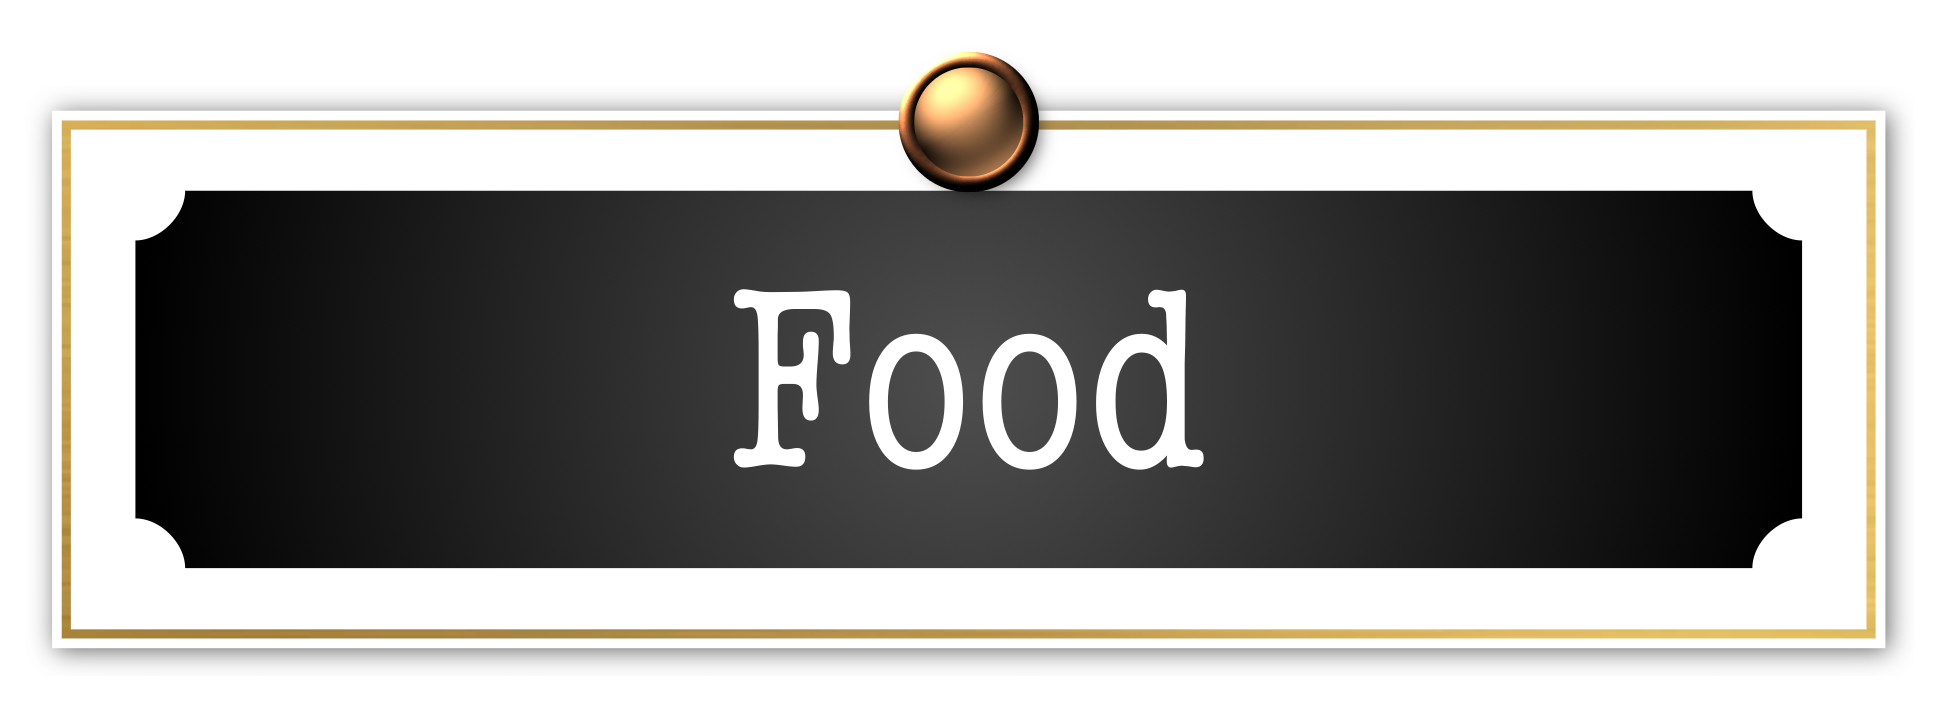 foodbutton.png